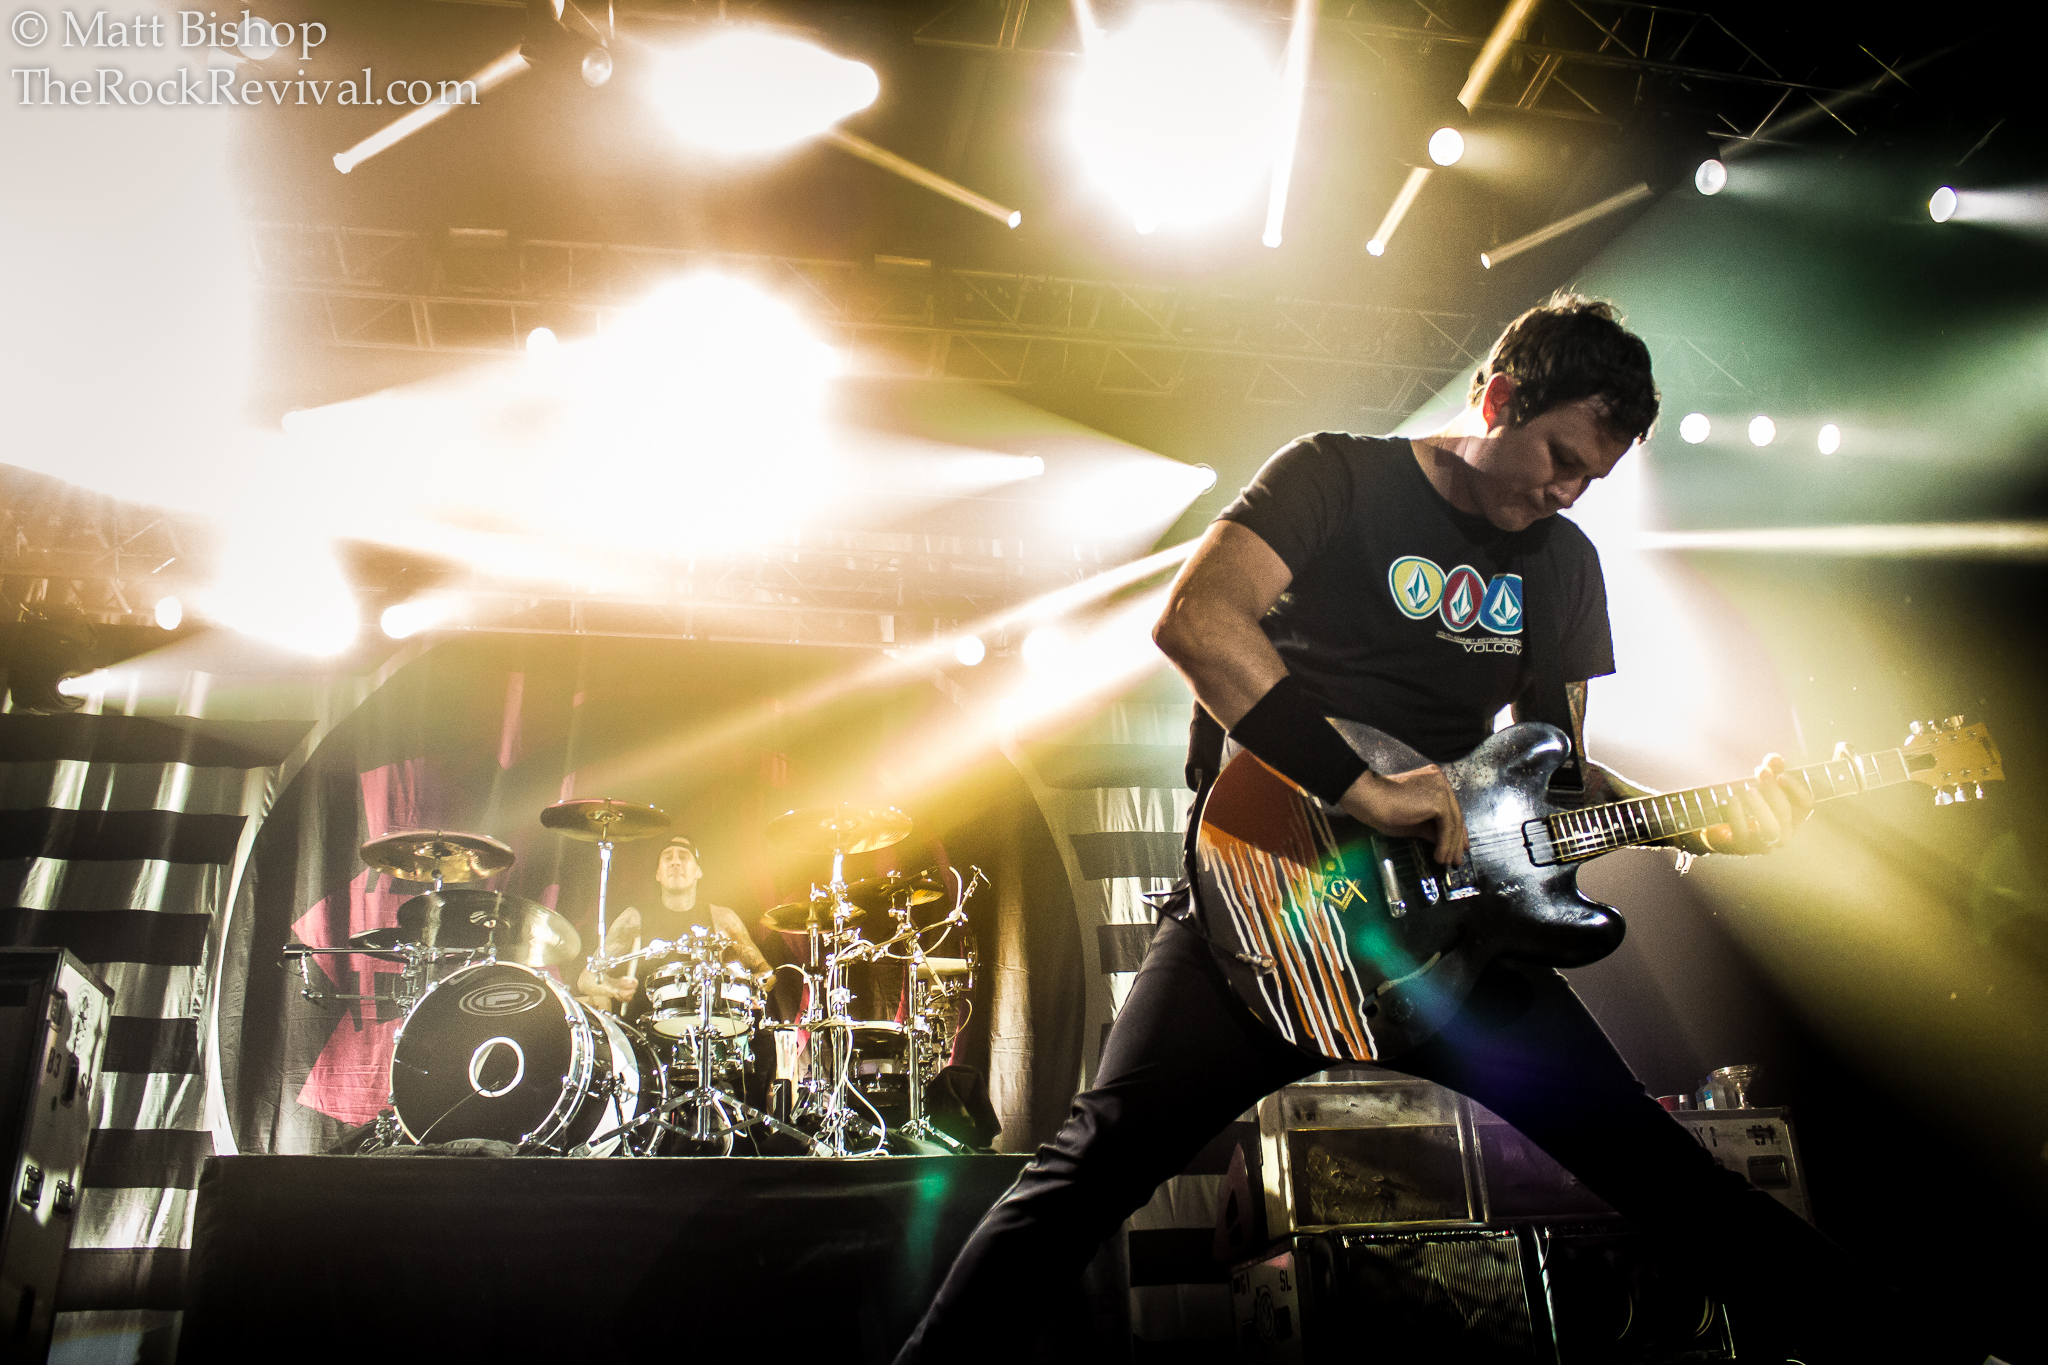 blink182 confirm new album band begins rehearsals today